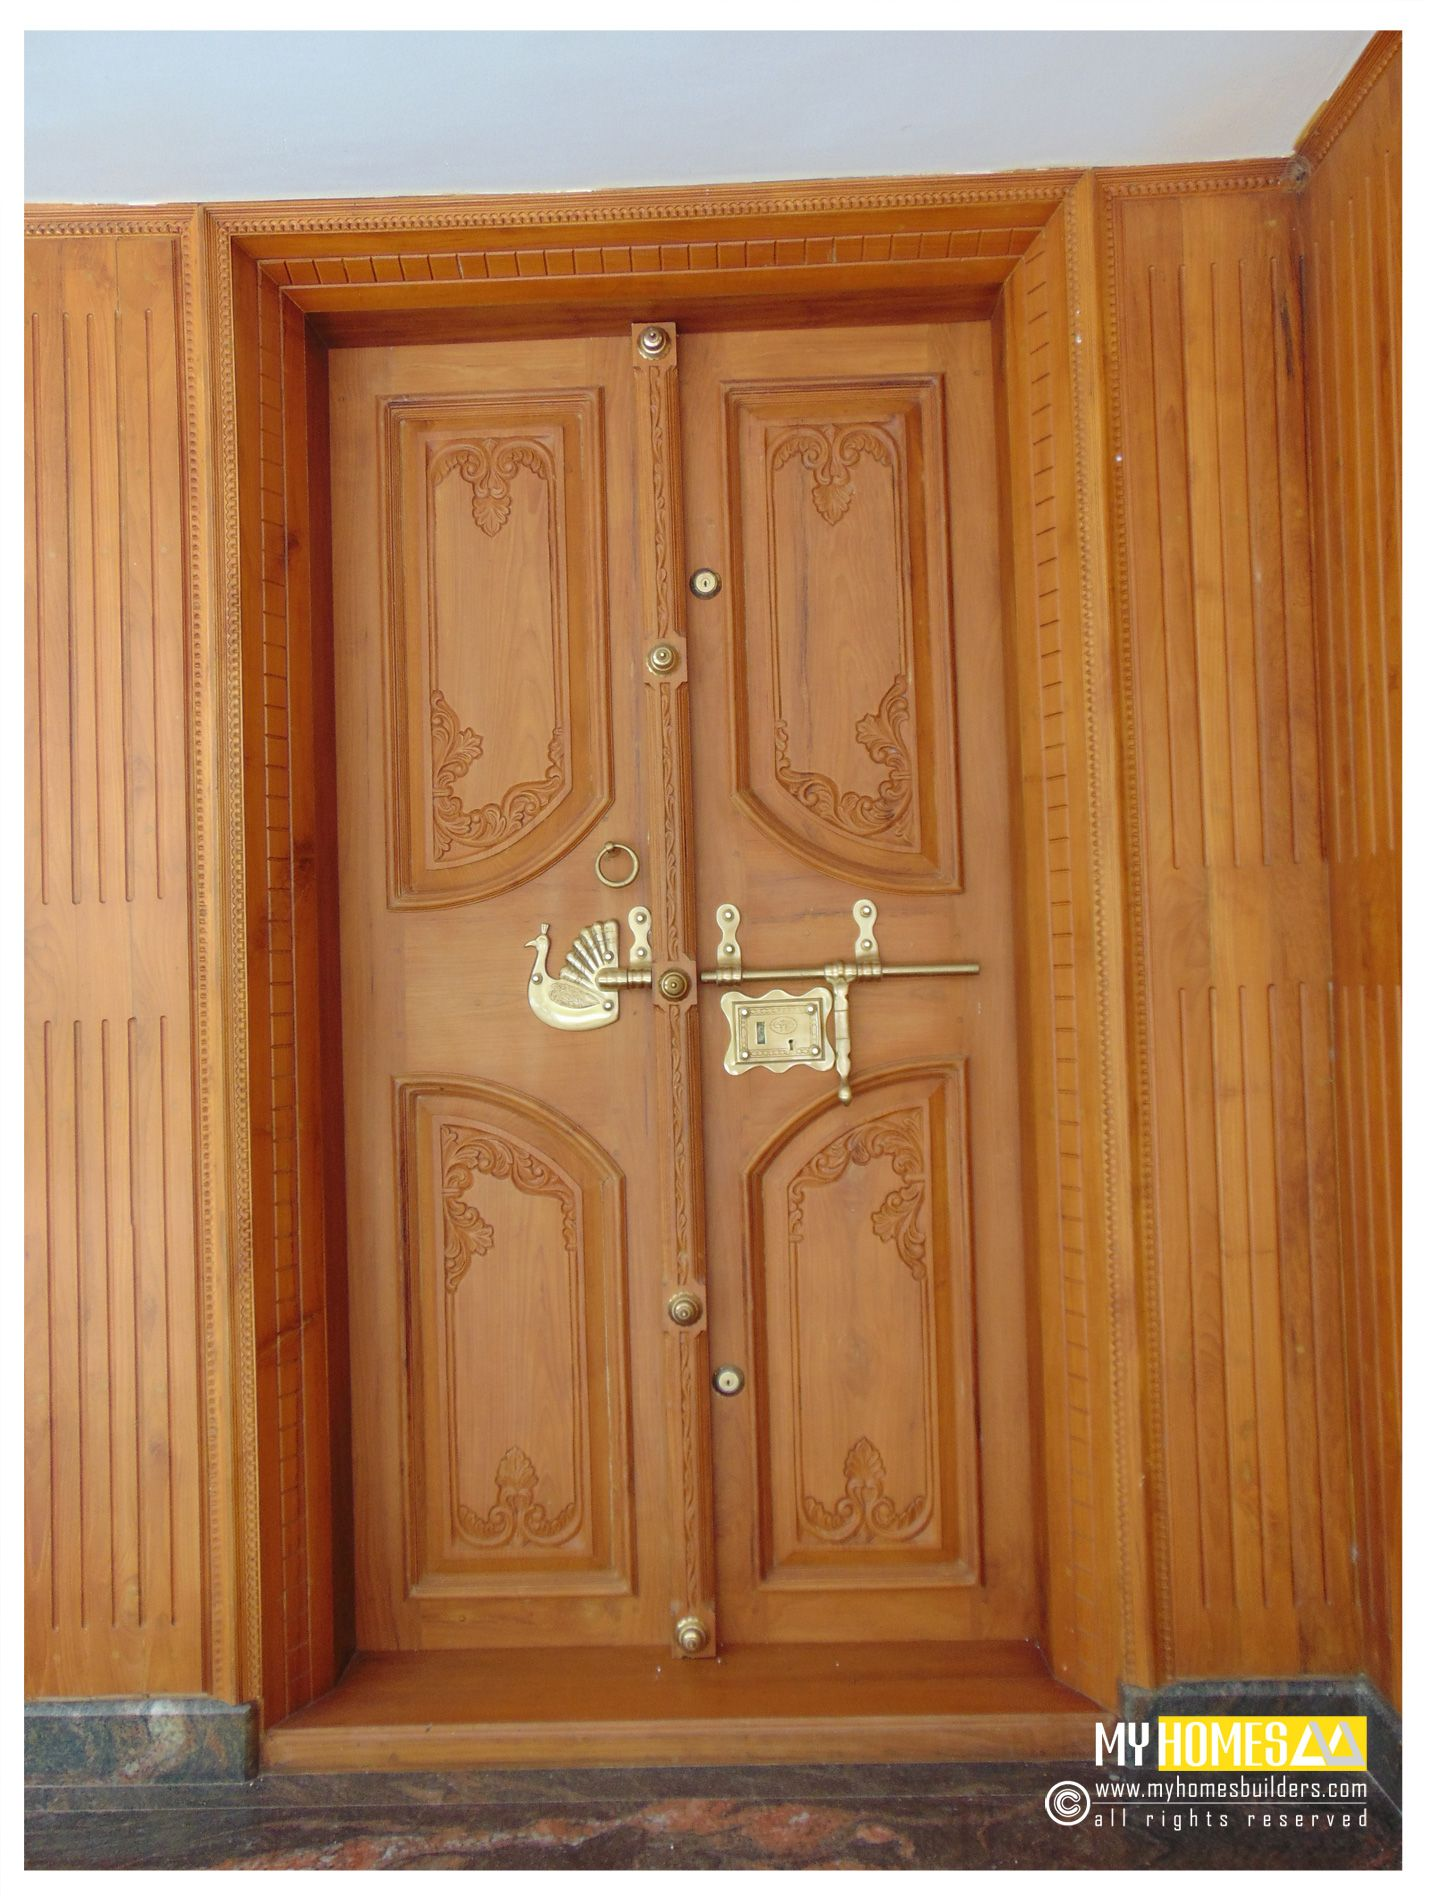 Kerala Front Single Door Designs Images Rift Decorators Adam Inside  Dimensions 1600 X 1204 Kerala New Model Front Door Photo   How Accessible  Is Your Front